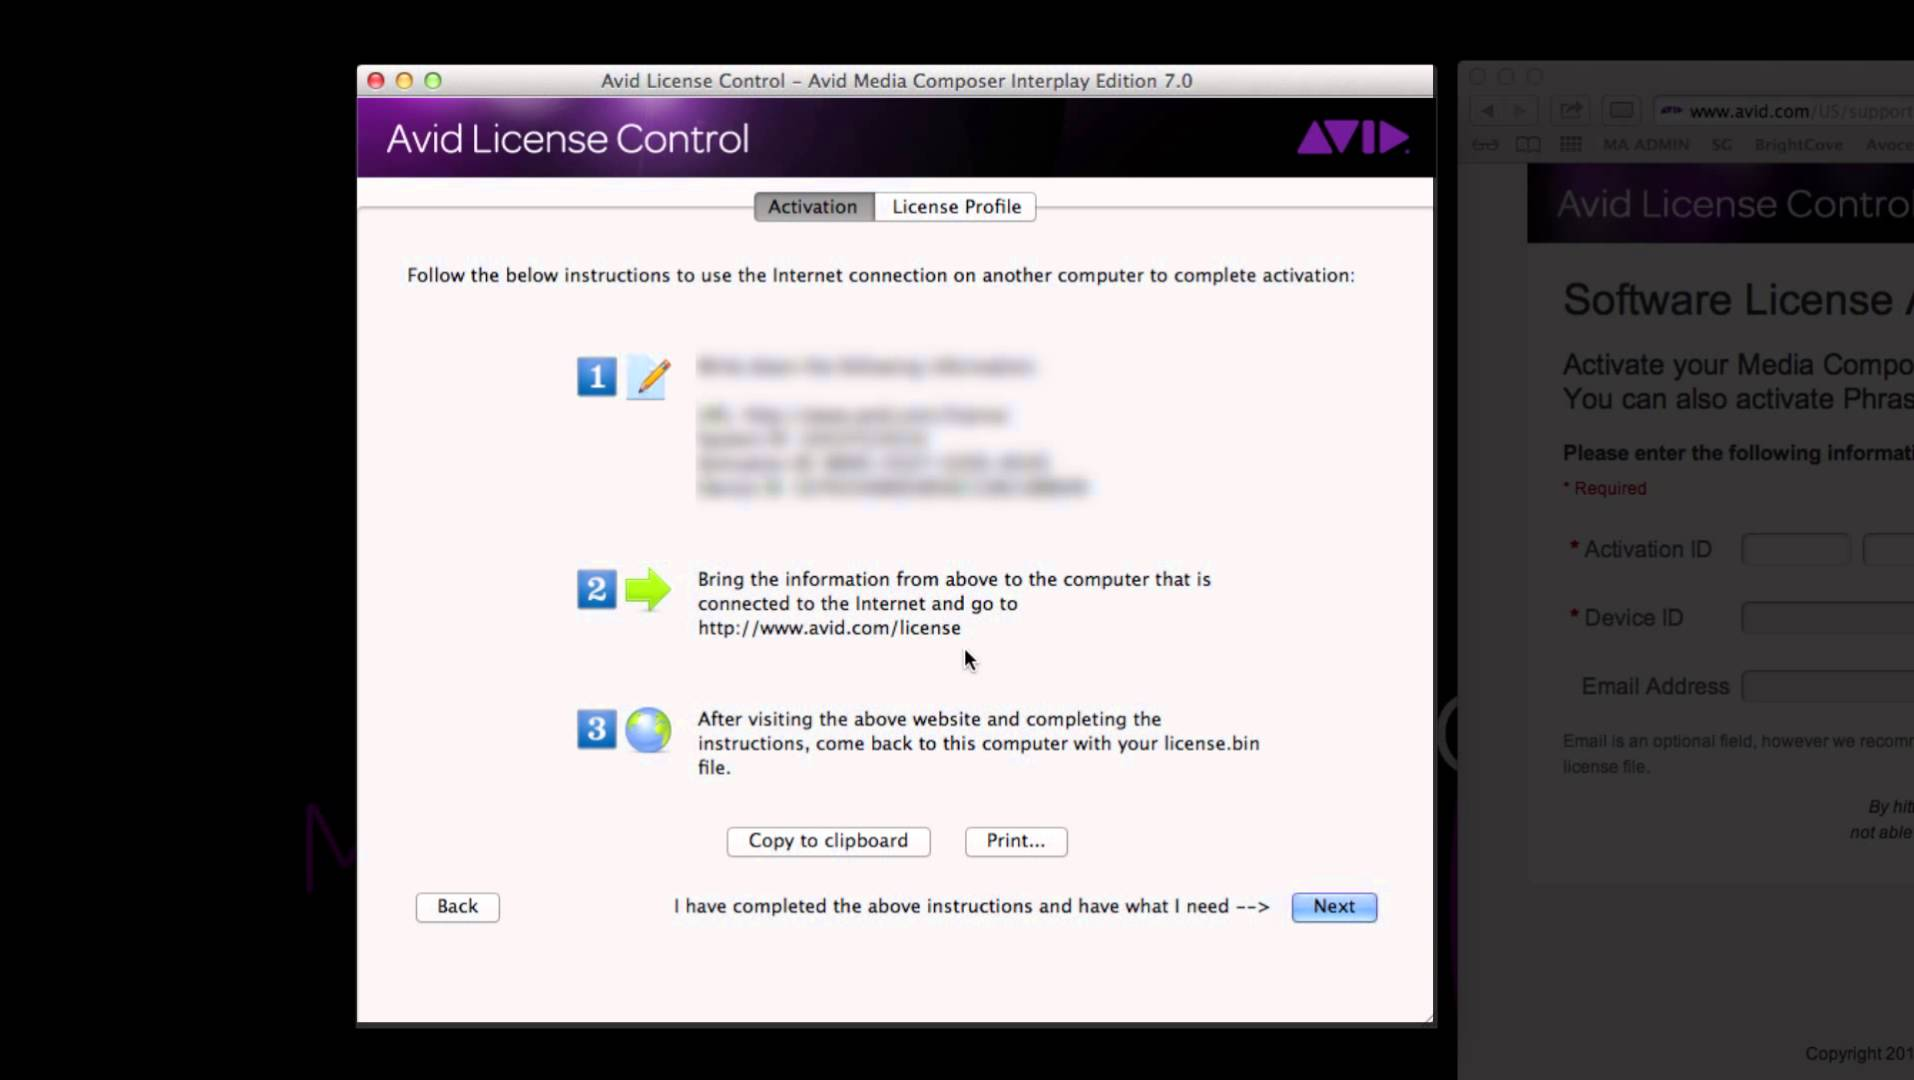 Media Composer® 7 Indirect Activation (no Internet Connection) ‒ Avid®